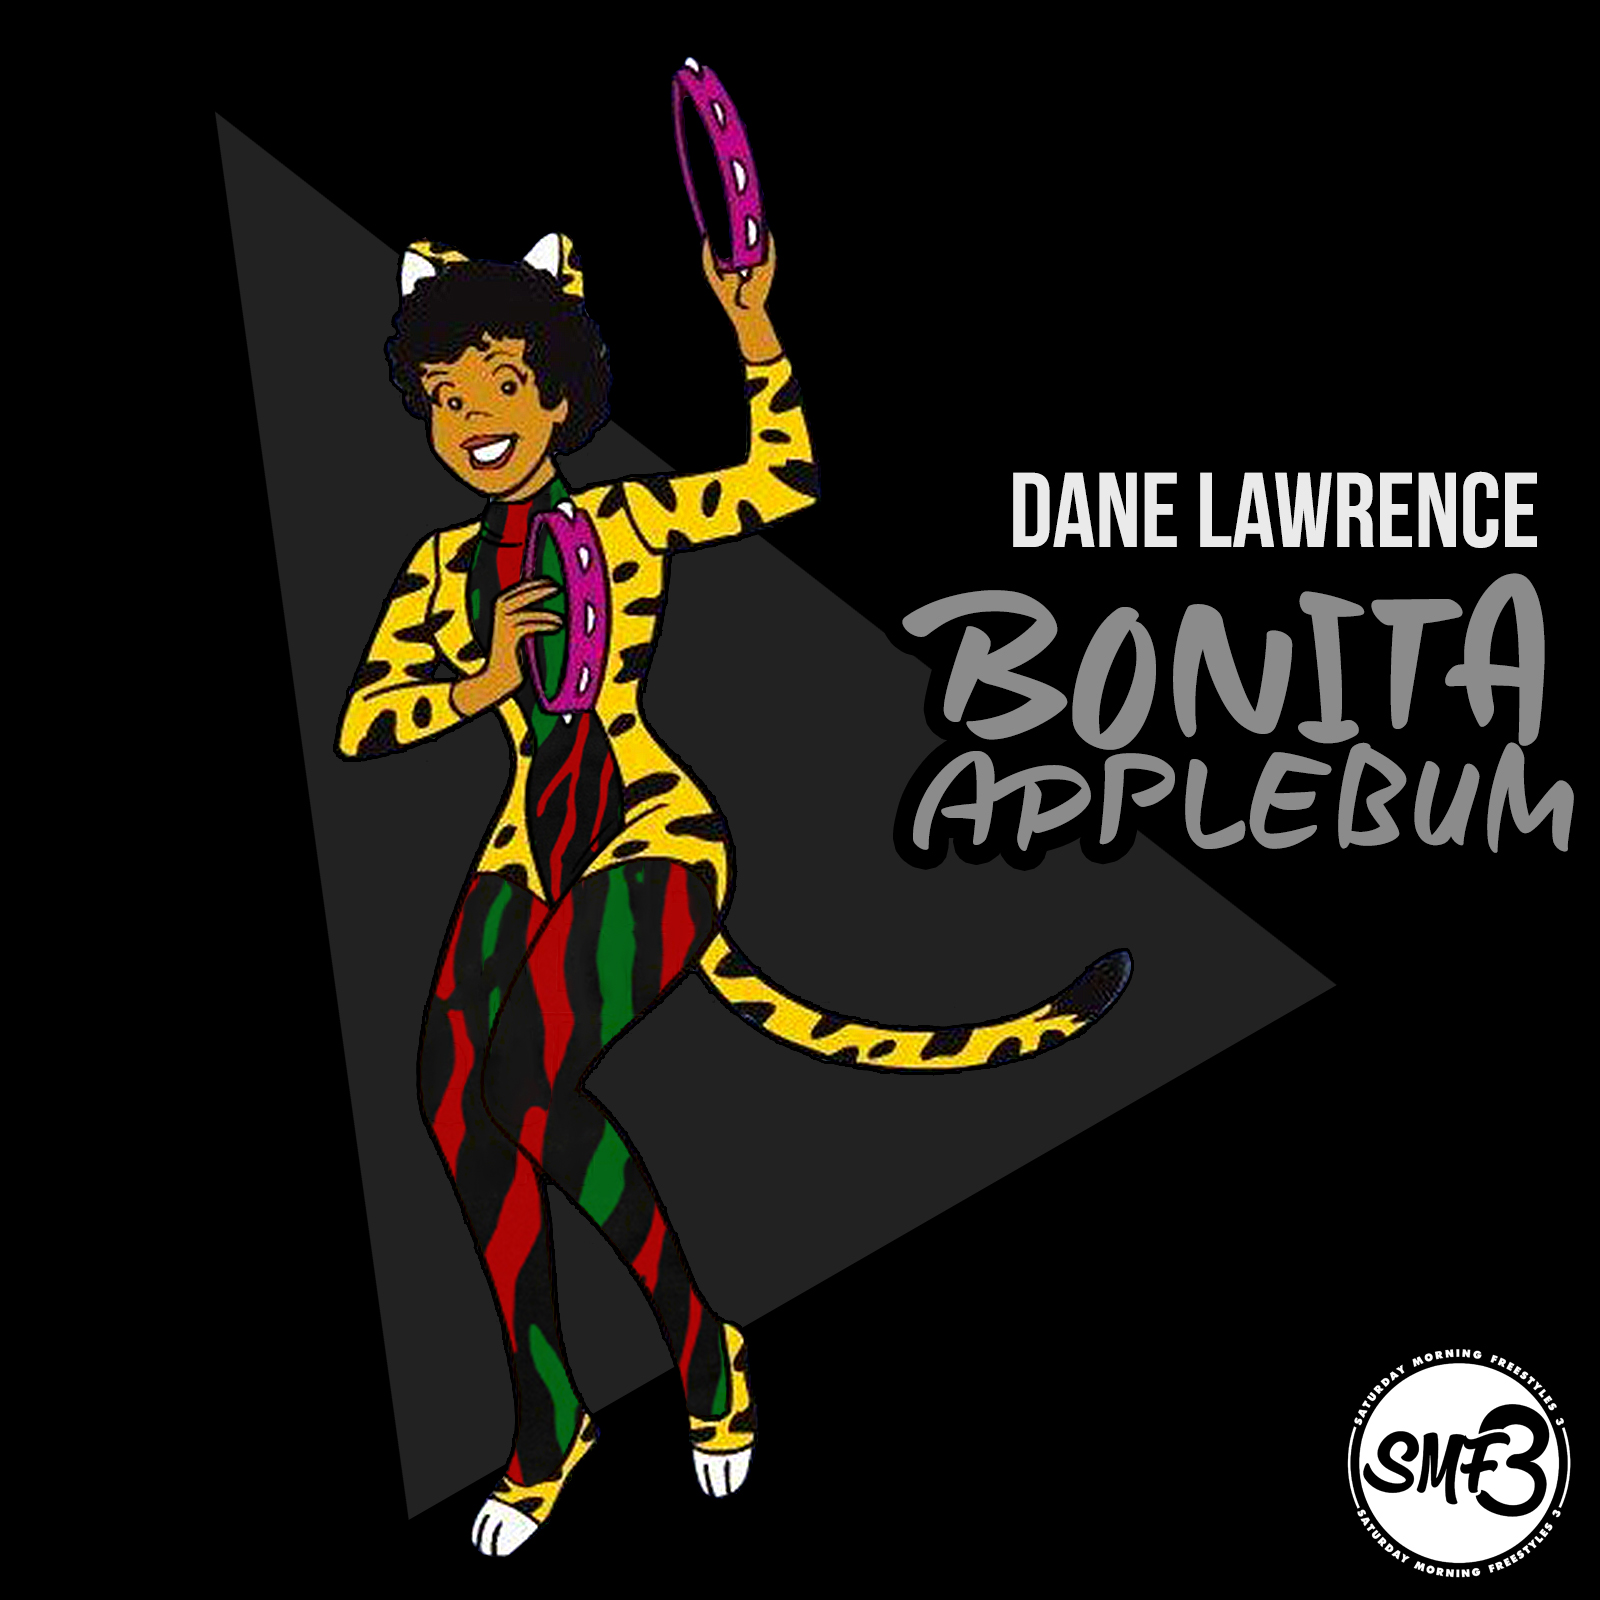 Dane Lawrence - Bonita Applebum - Saturday Morning Freestyles 3